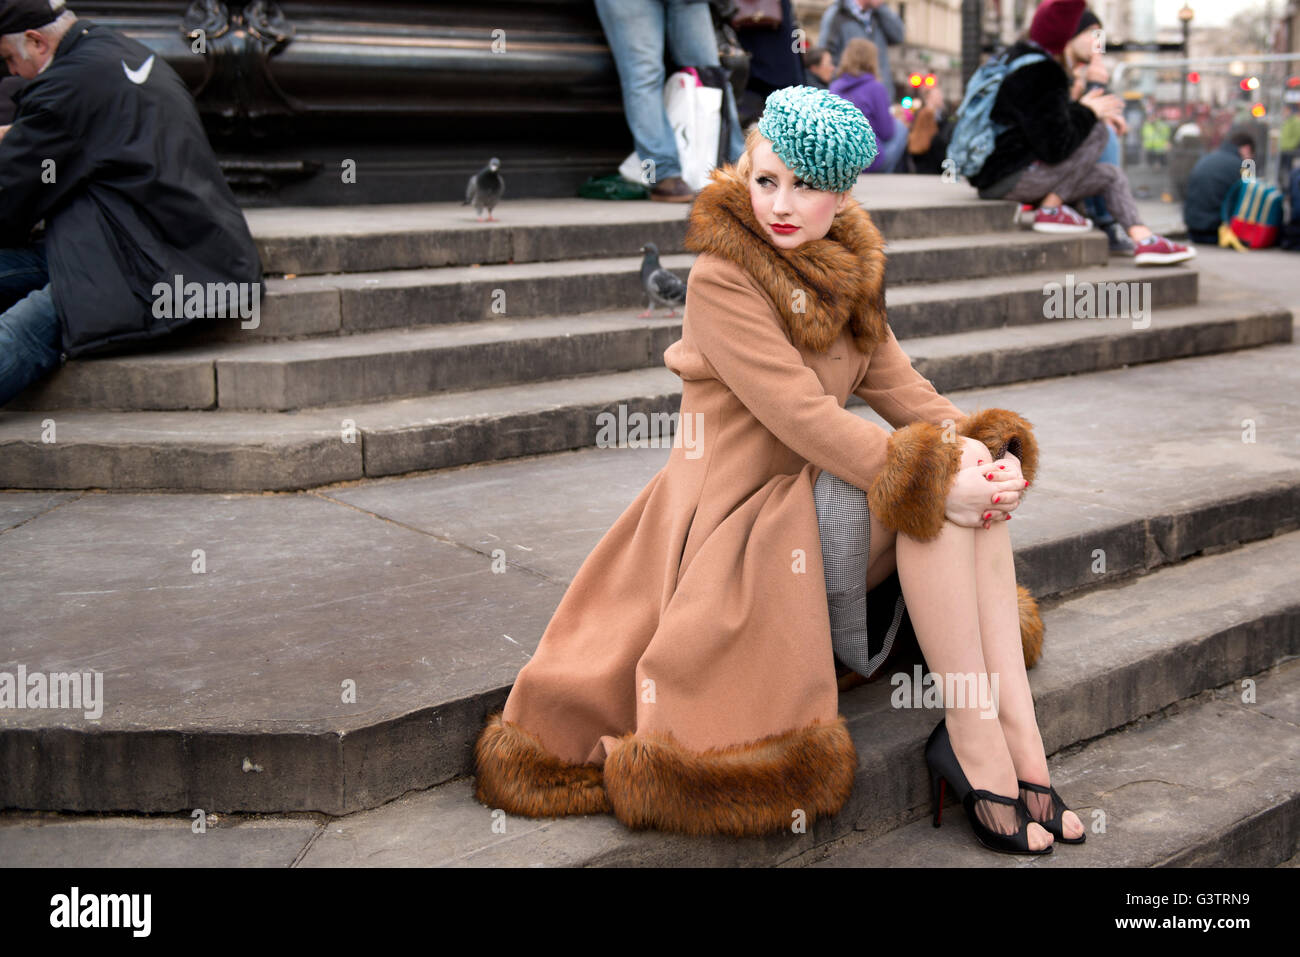 A stylish young woman dressed in 1930s style clothing sitting by the statue of Eros at Piccadilly Circus. - Stock Image